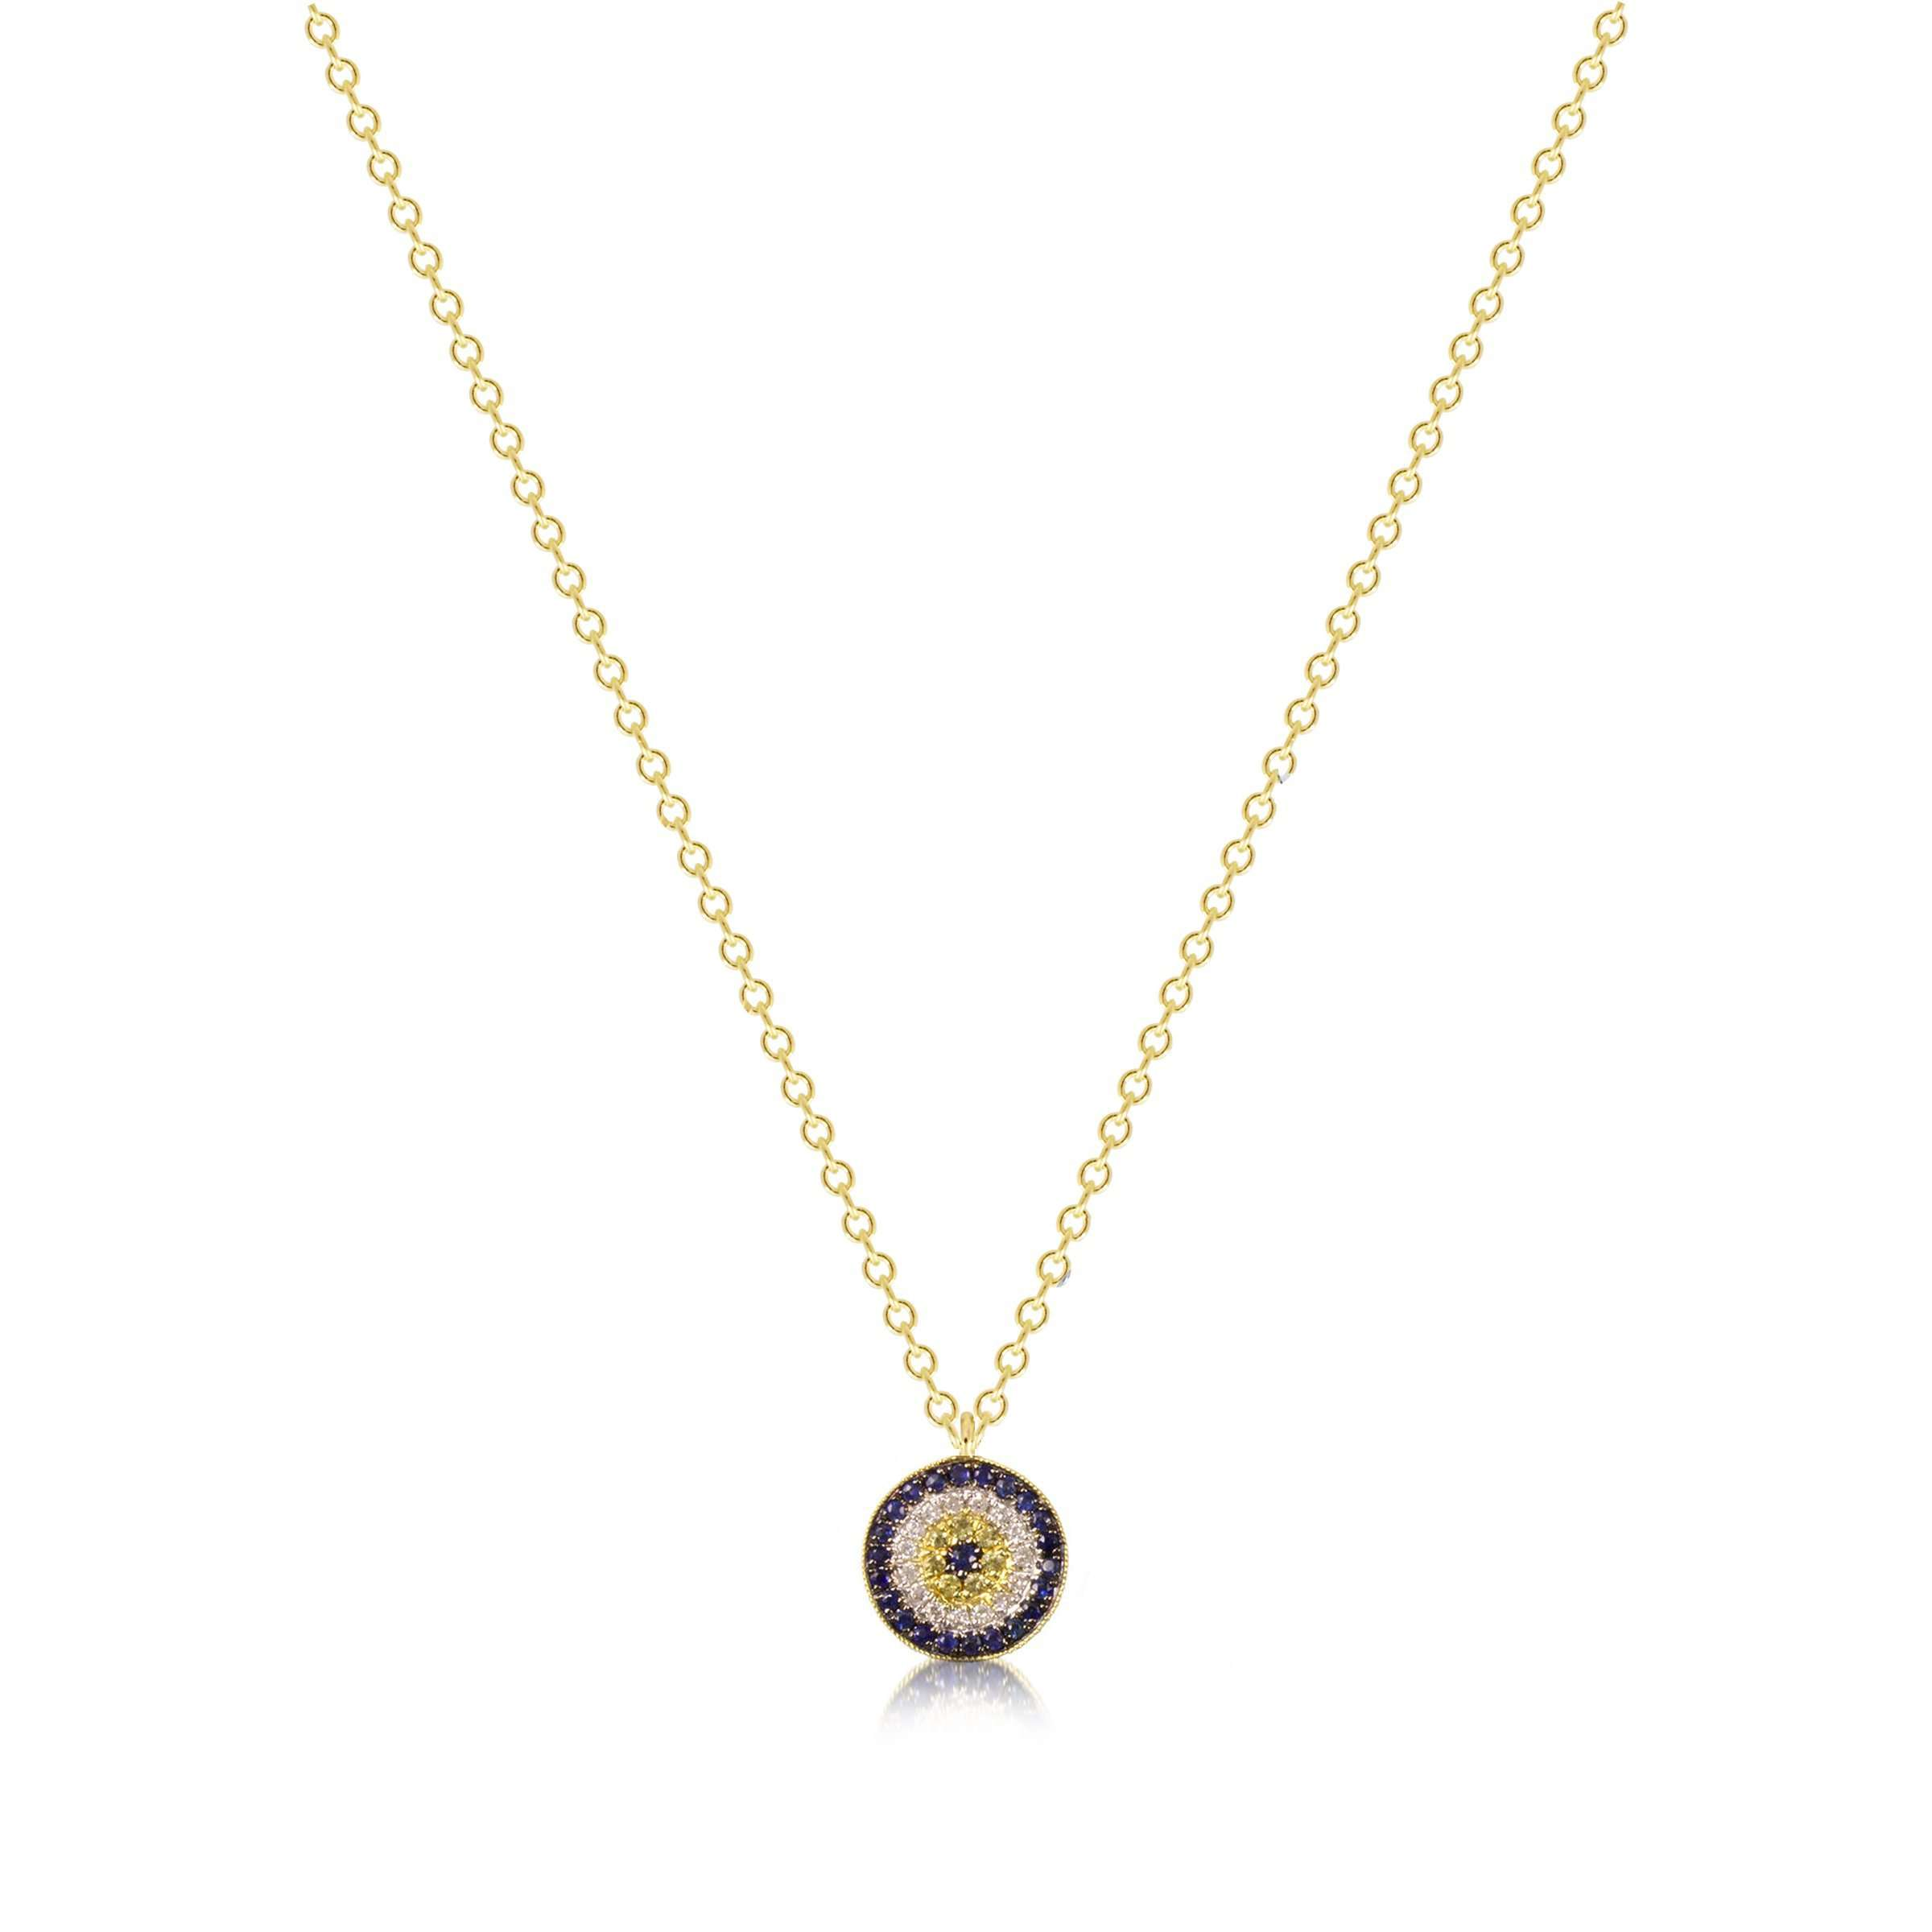 Meira T Classic Evil Eye Necklace